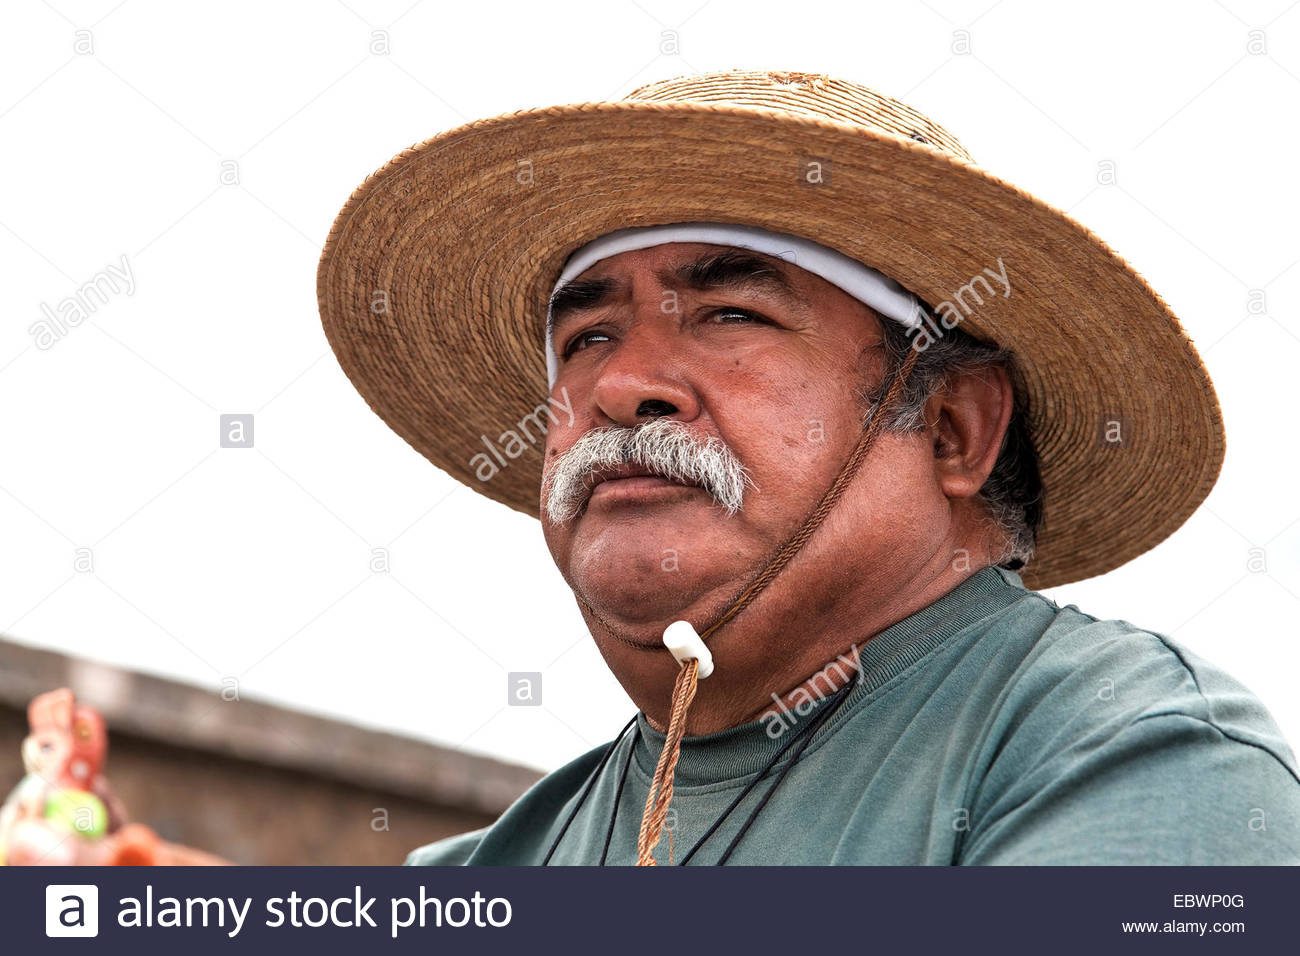 Mexican Man Hat Stock Photos   Mexican Man Hat Stock Images - Alamy f7be0cd1b94